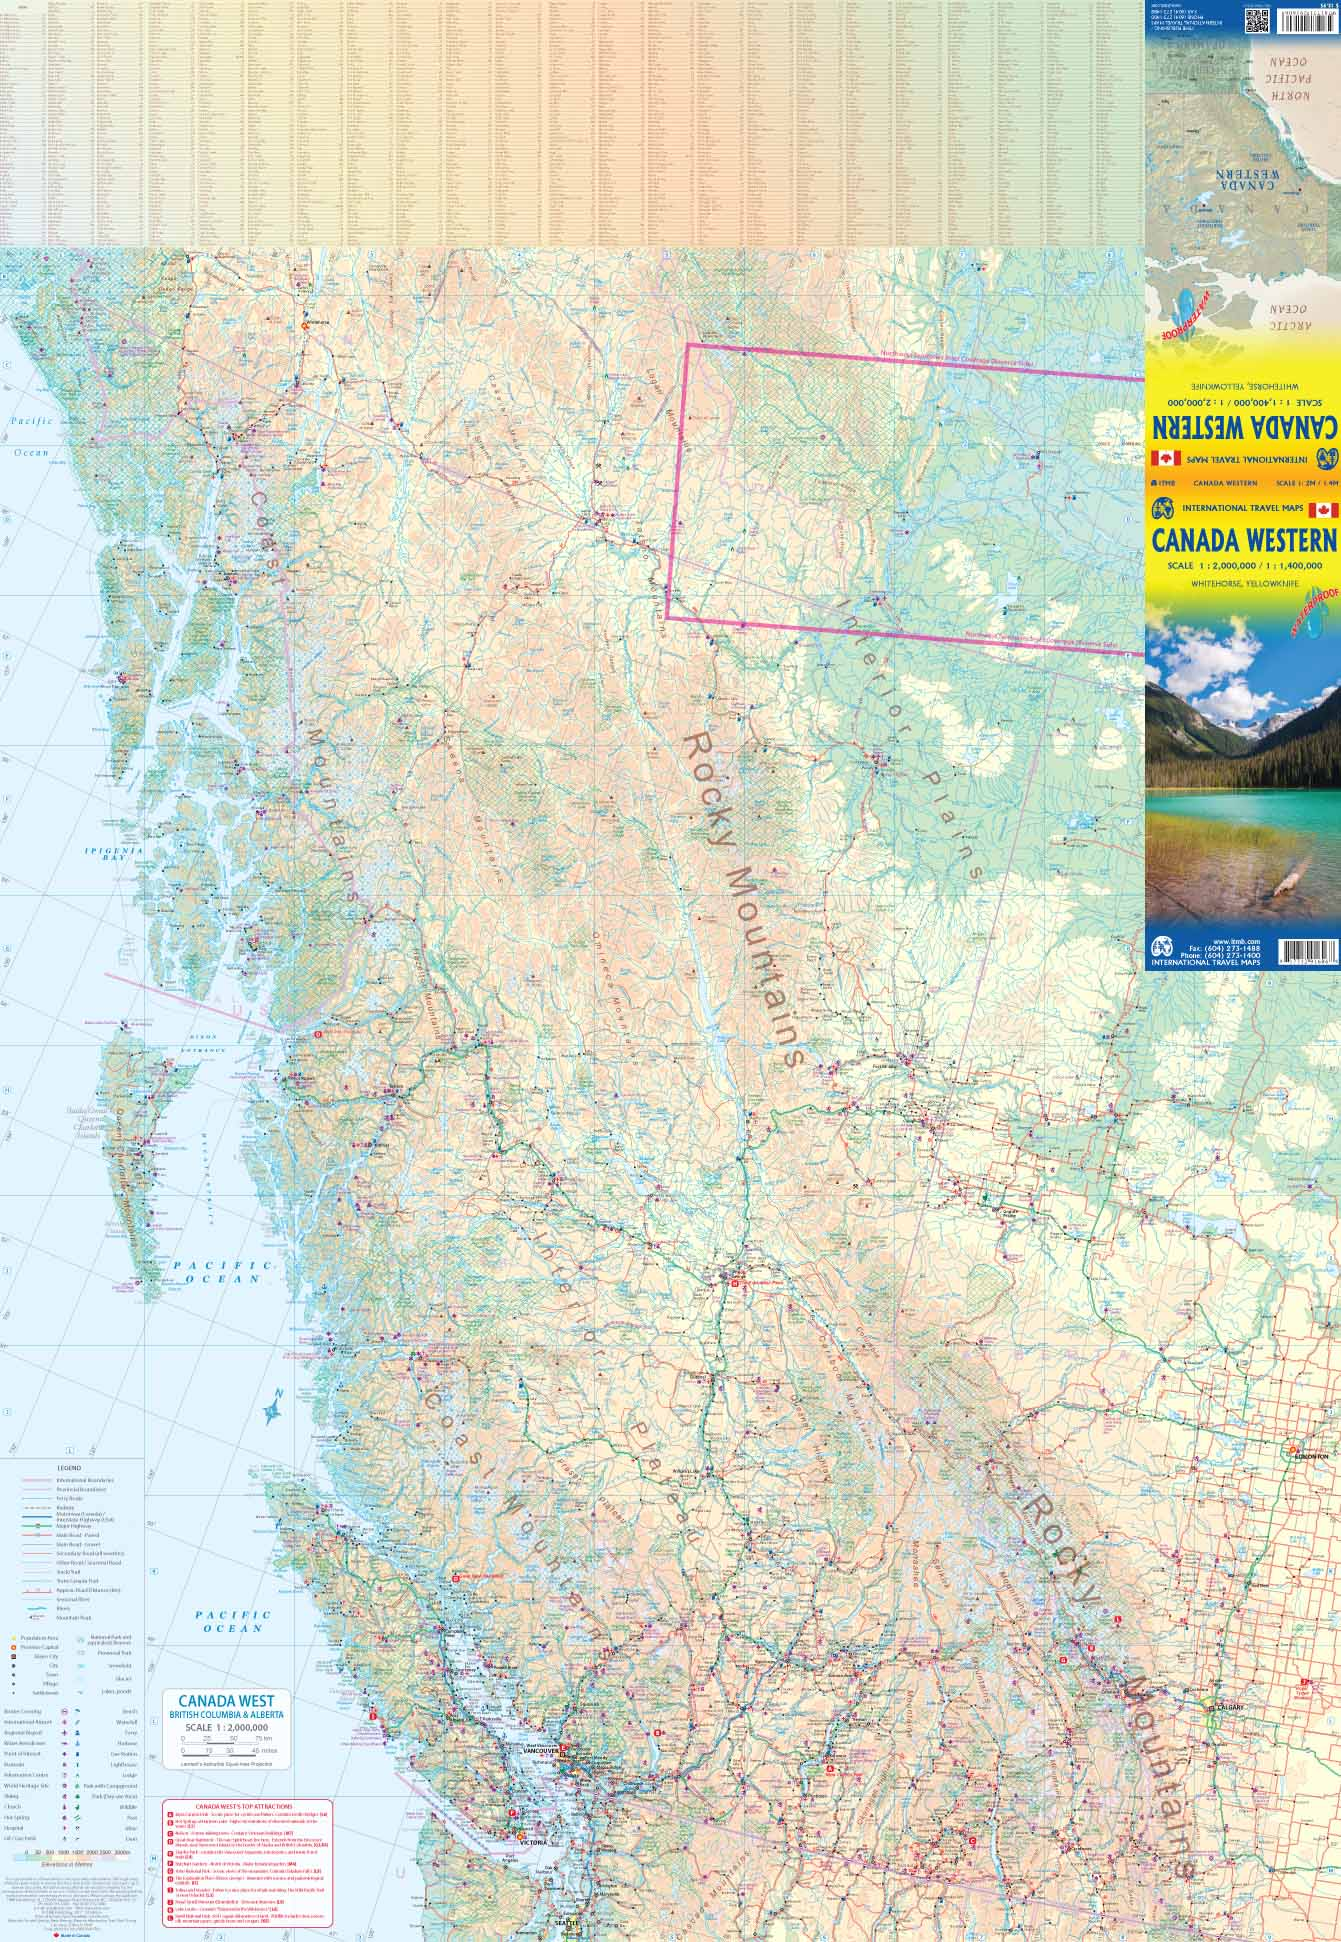 Maps for travel, City Maps, Road Maps, Guides, Globes, Topographic Canada Travel Map on